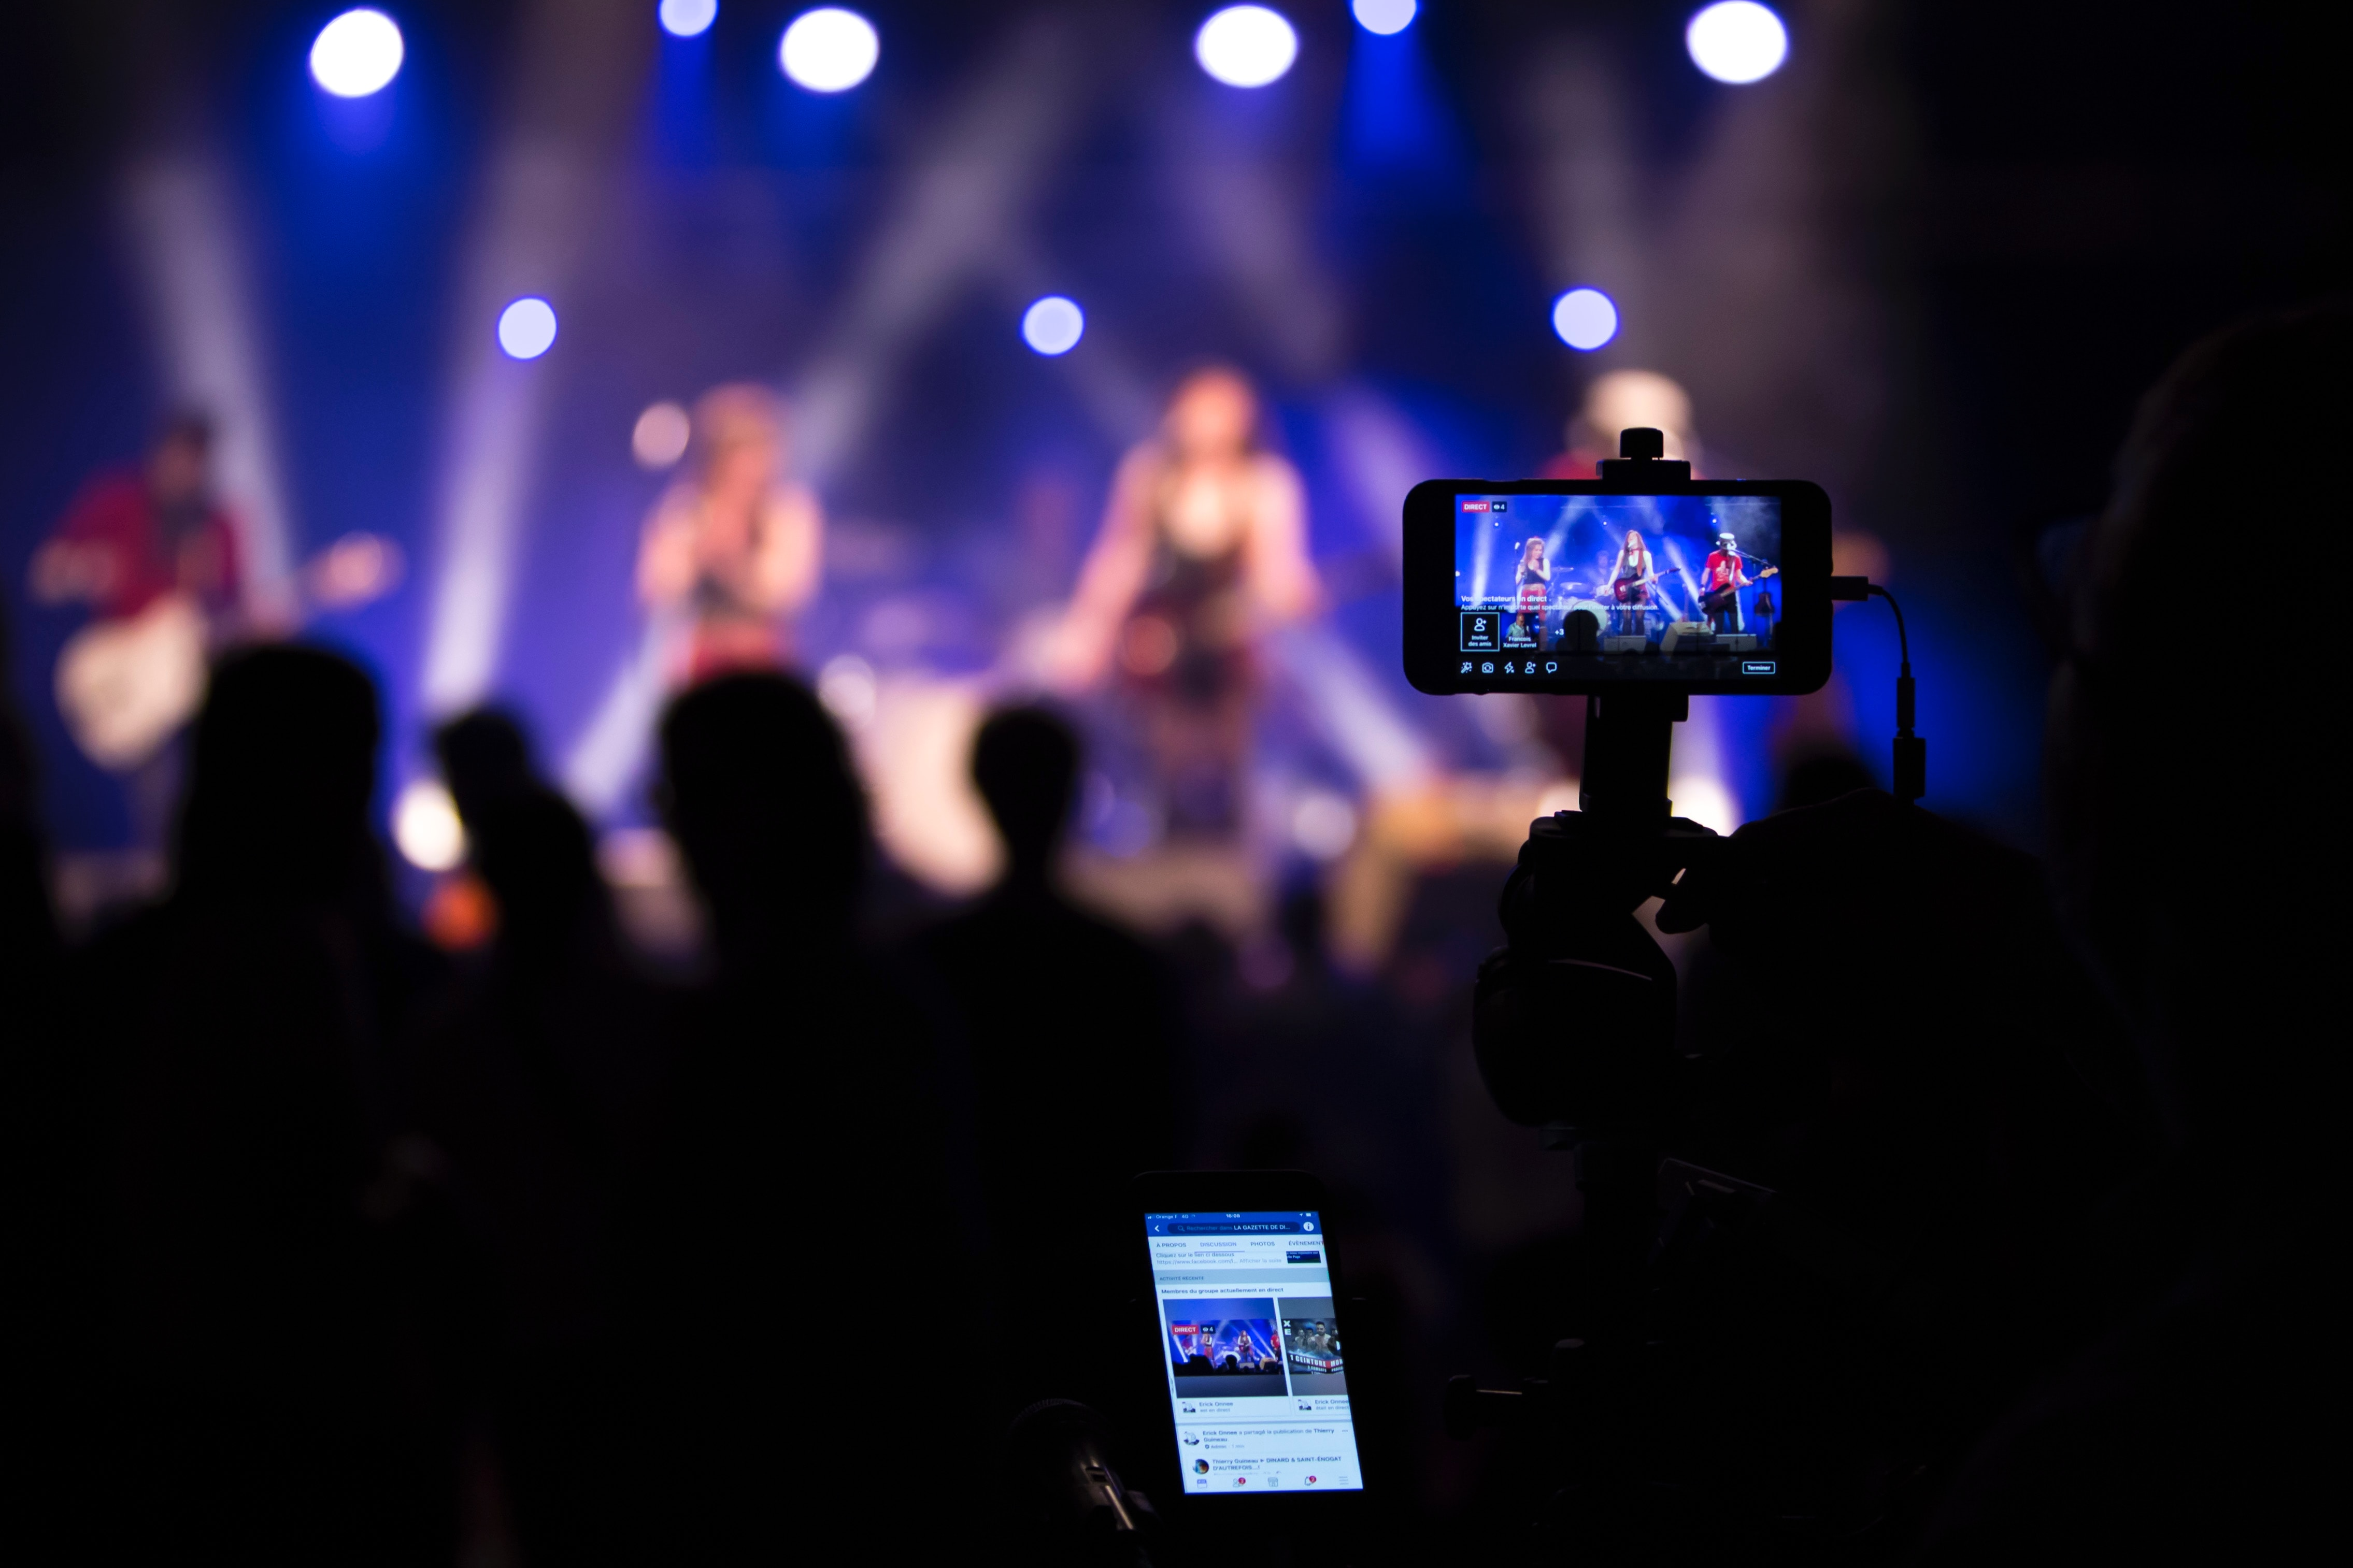 7 Ways to Promote your Event on Social Media